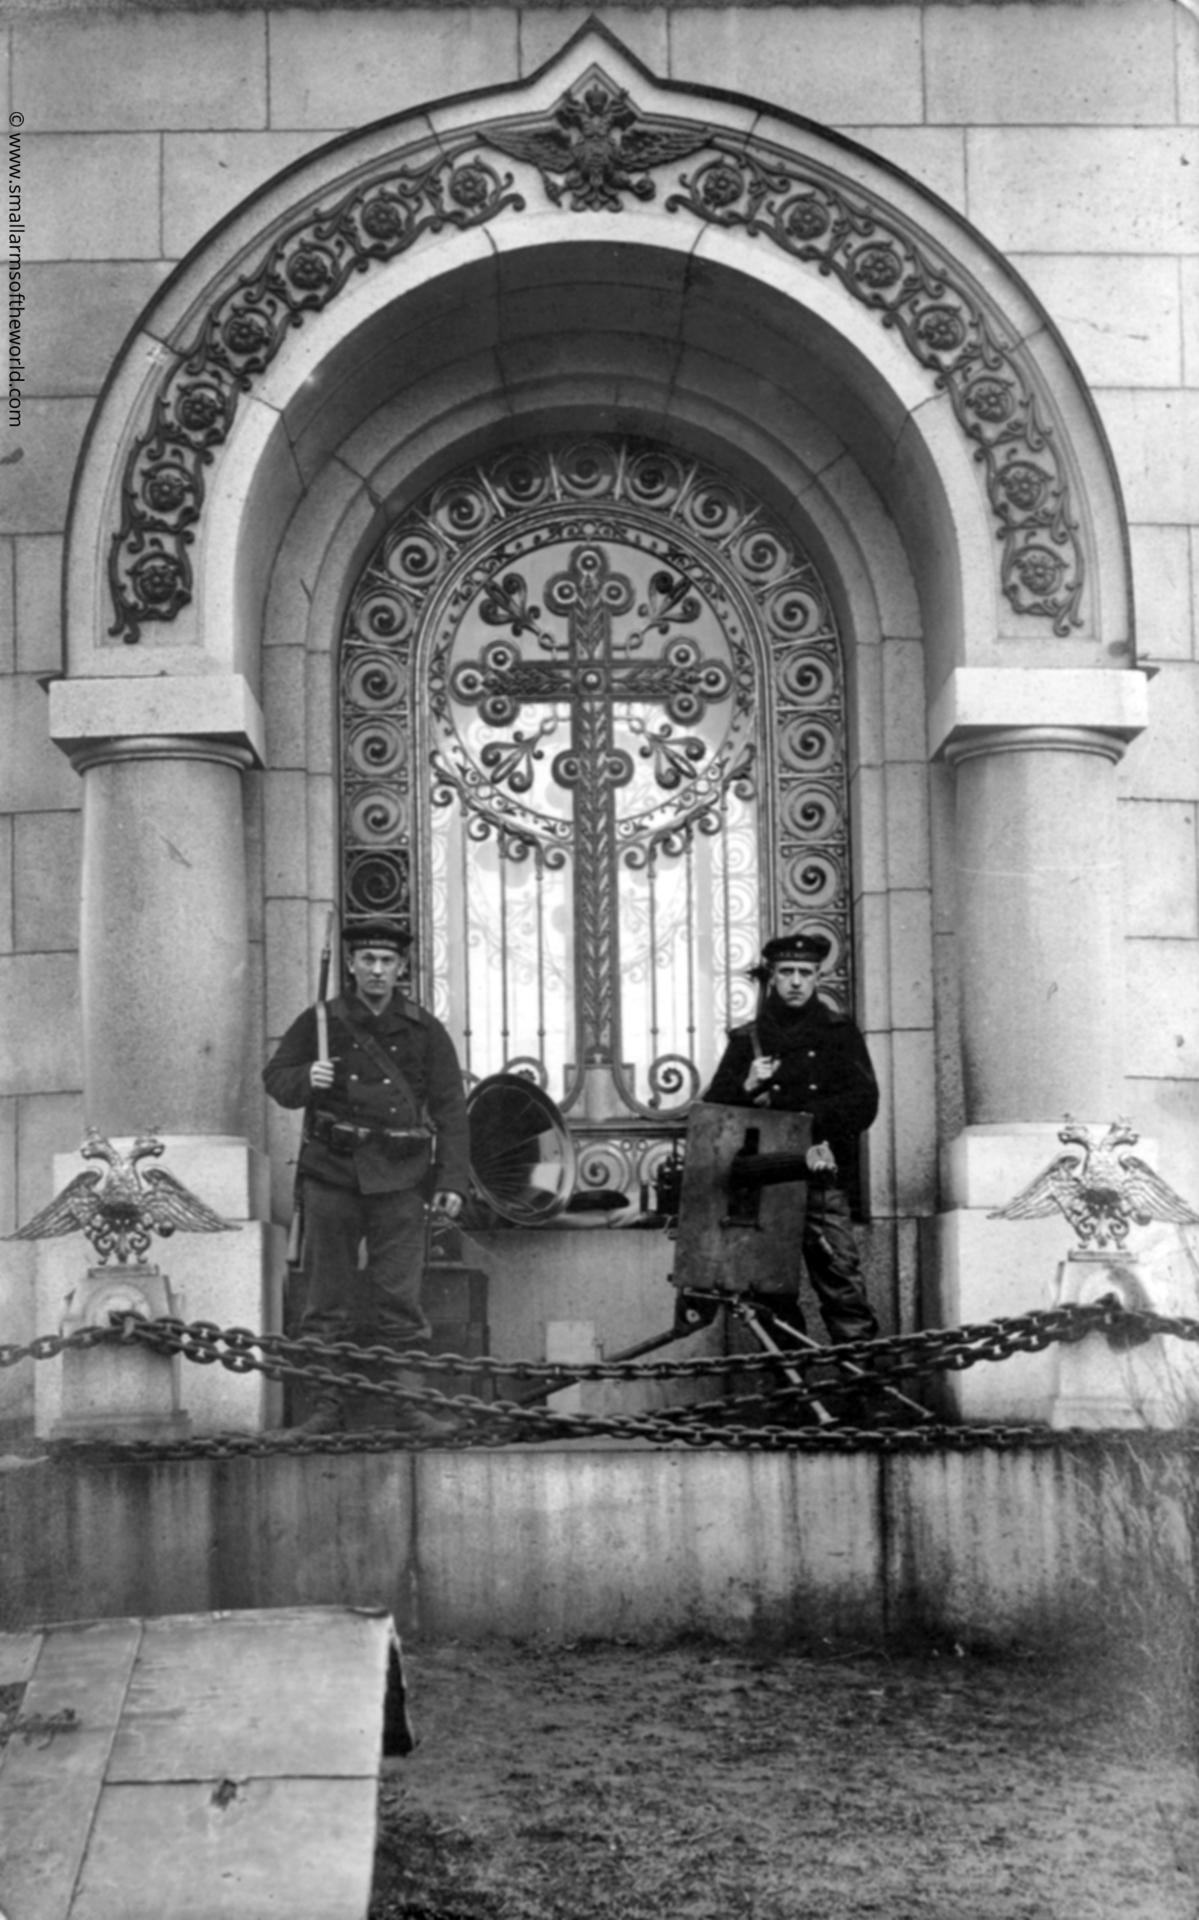 Two German Sailors off the SMS Westfalen with a Russian Model 1910 Maxim gun on shielded mount. In front of a church. The Westfalen took part in the Naval battles of Riga and also served in combat near Finland. The photo was most likely taken in Riga.